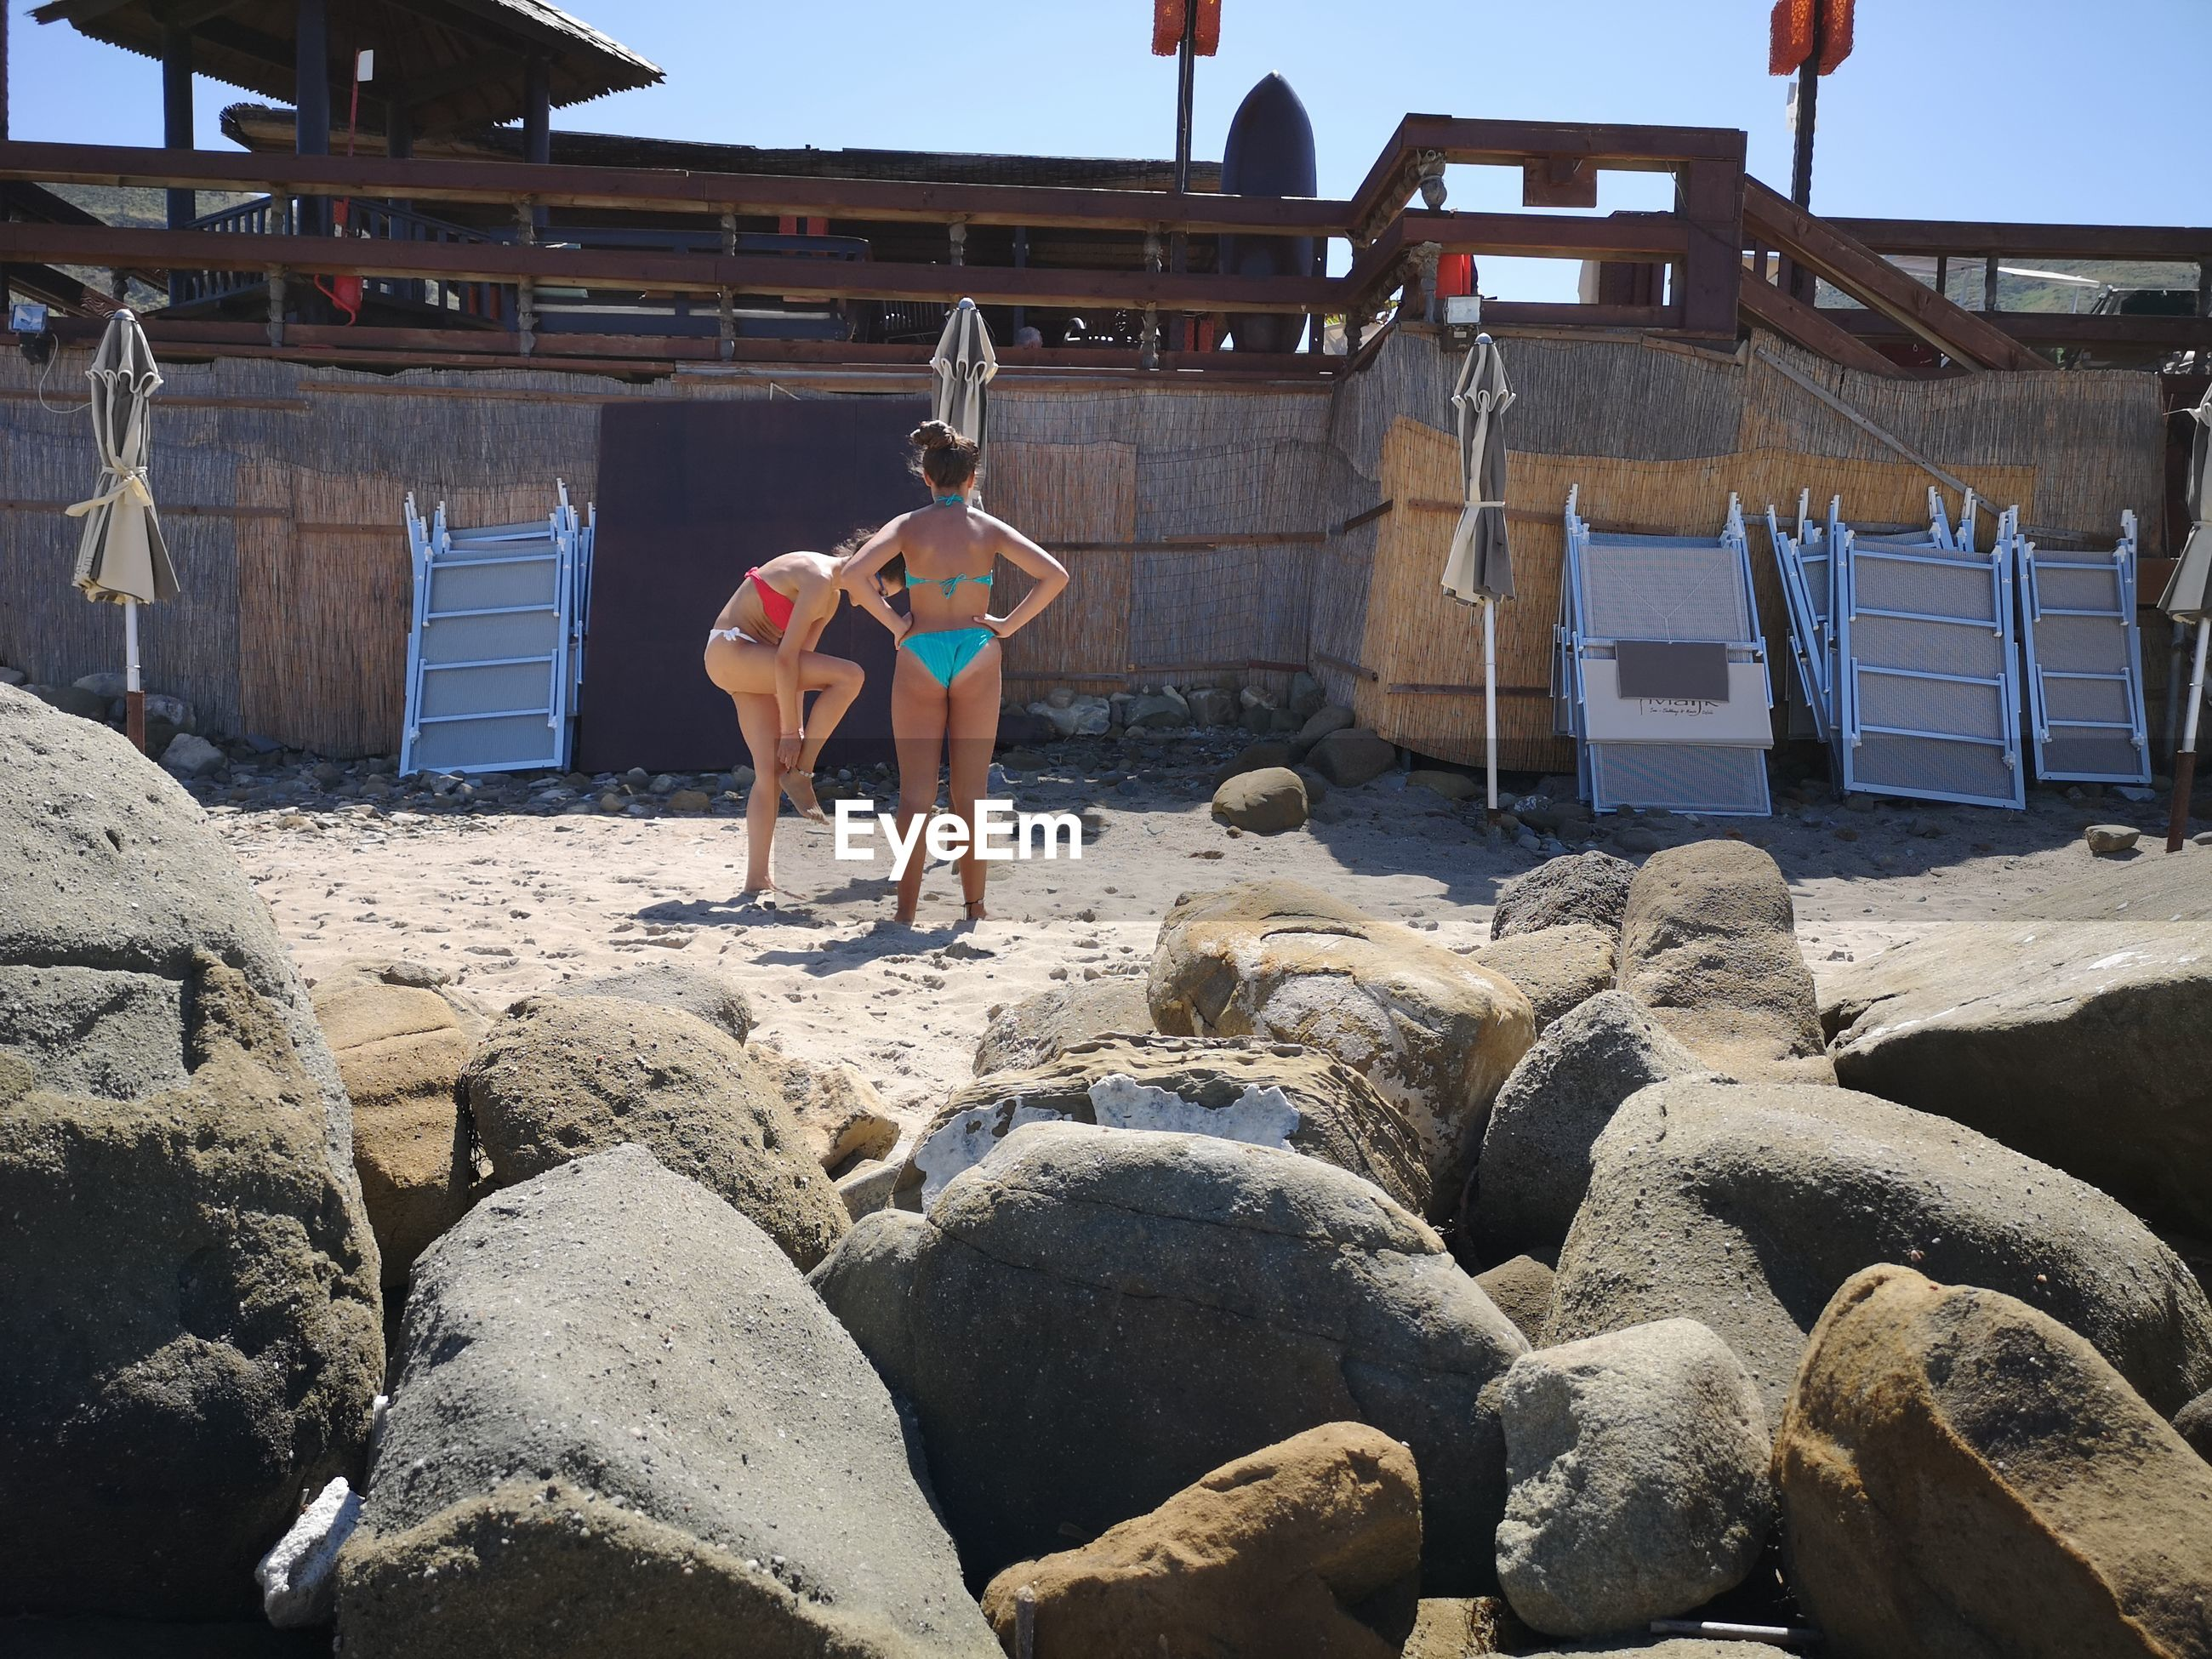 FULL LENGTH OF SHIRTLESS MAN STANDING ON ROCKS BY BUILDING